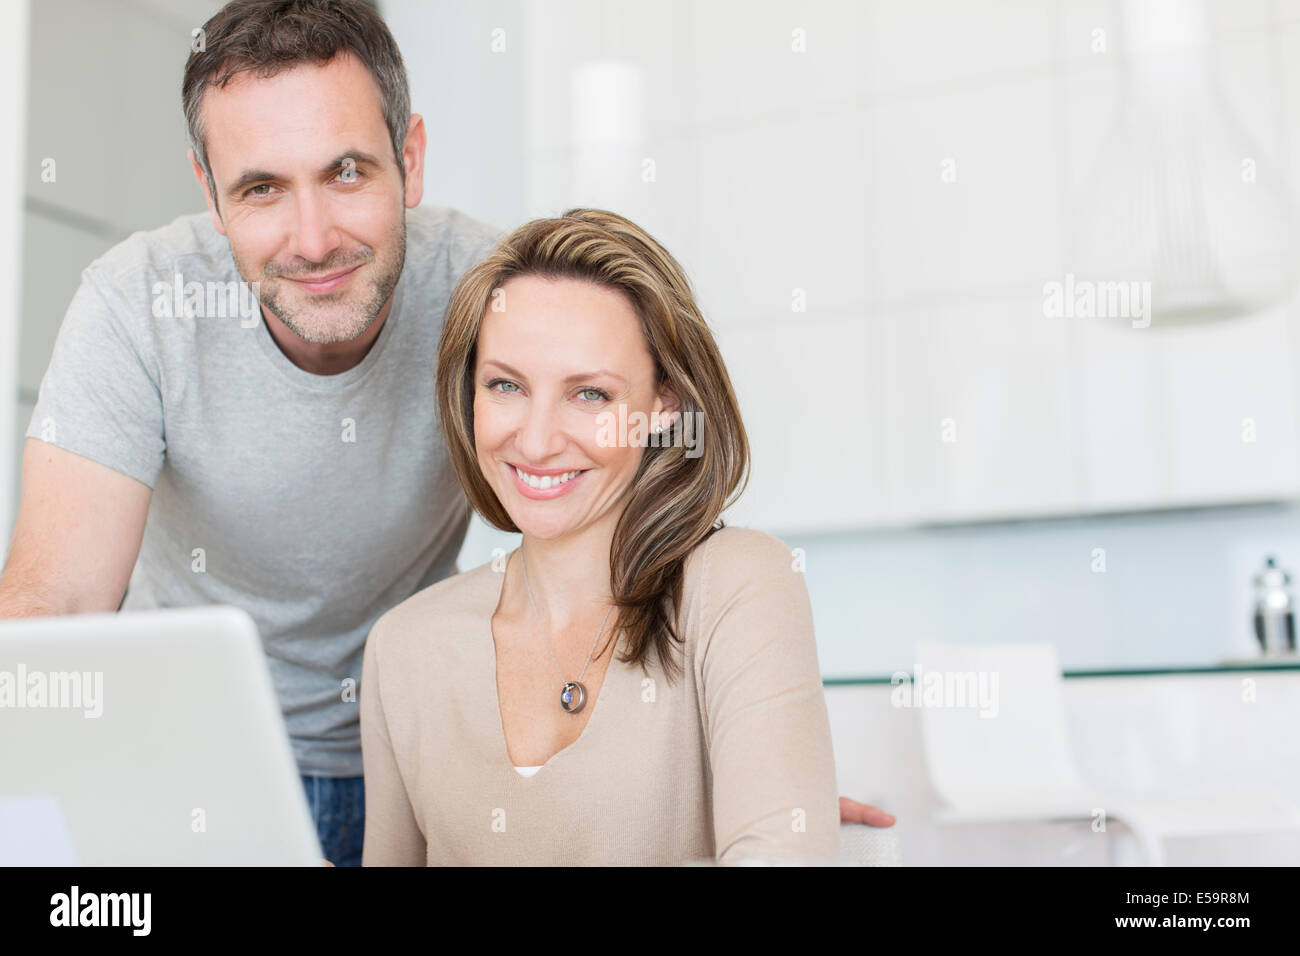 Couple smiling at laptop - Stock Image